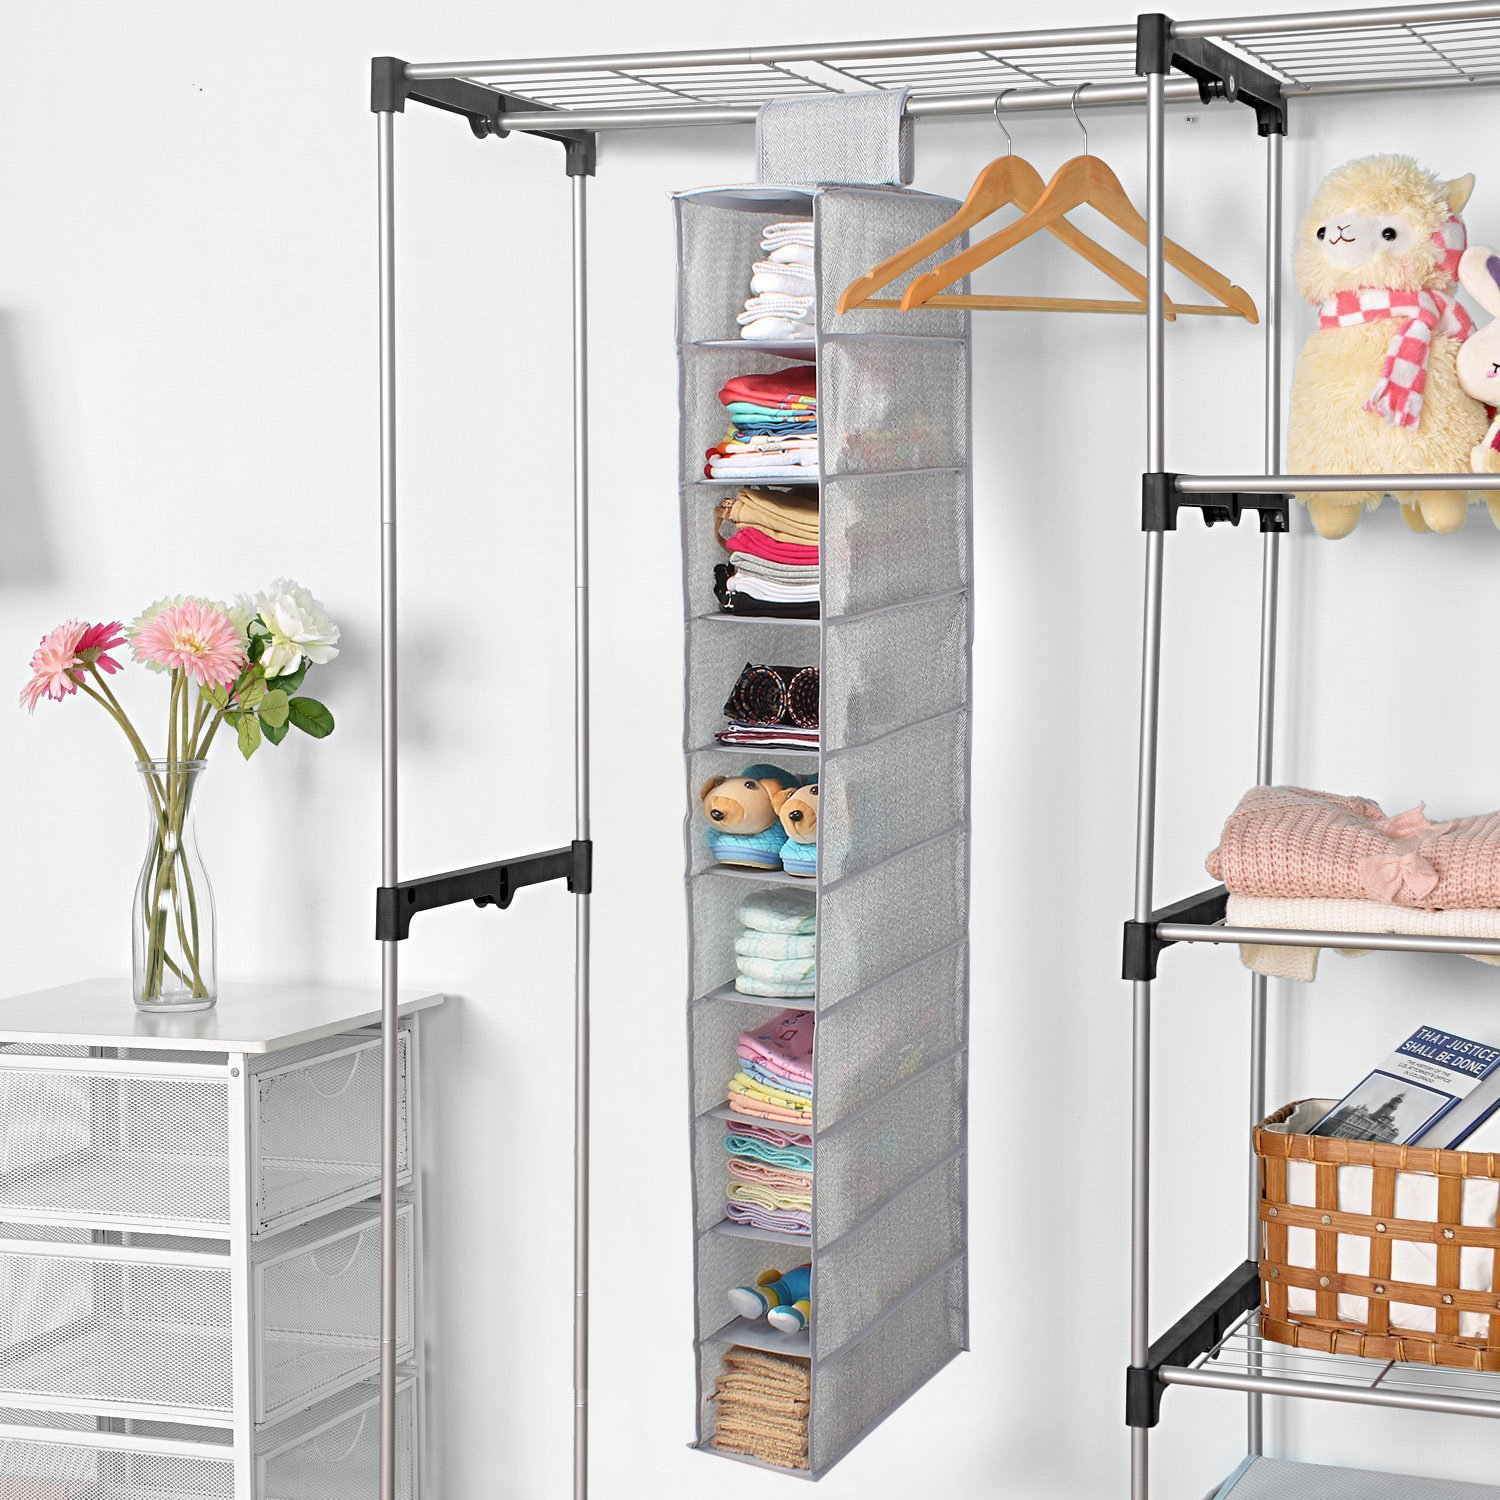 Homestorie Non Woven Cloth Hanging Storage Wardrobe Organizer, 10 Shelves, Grey